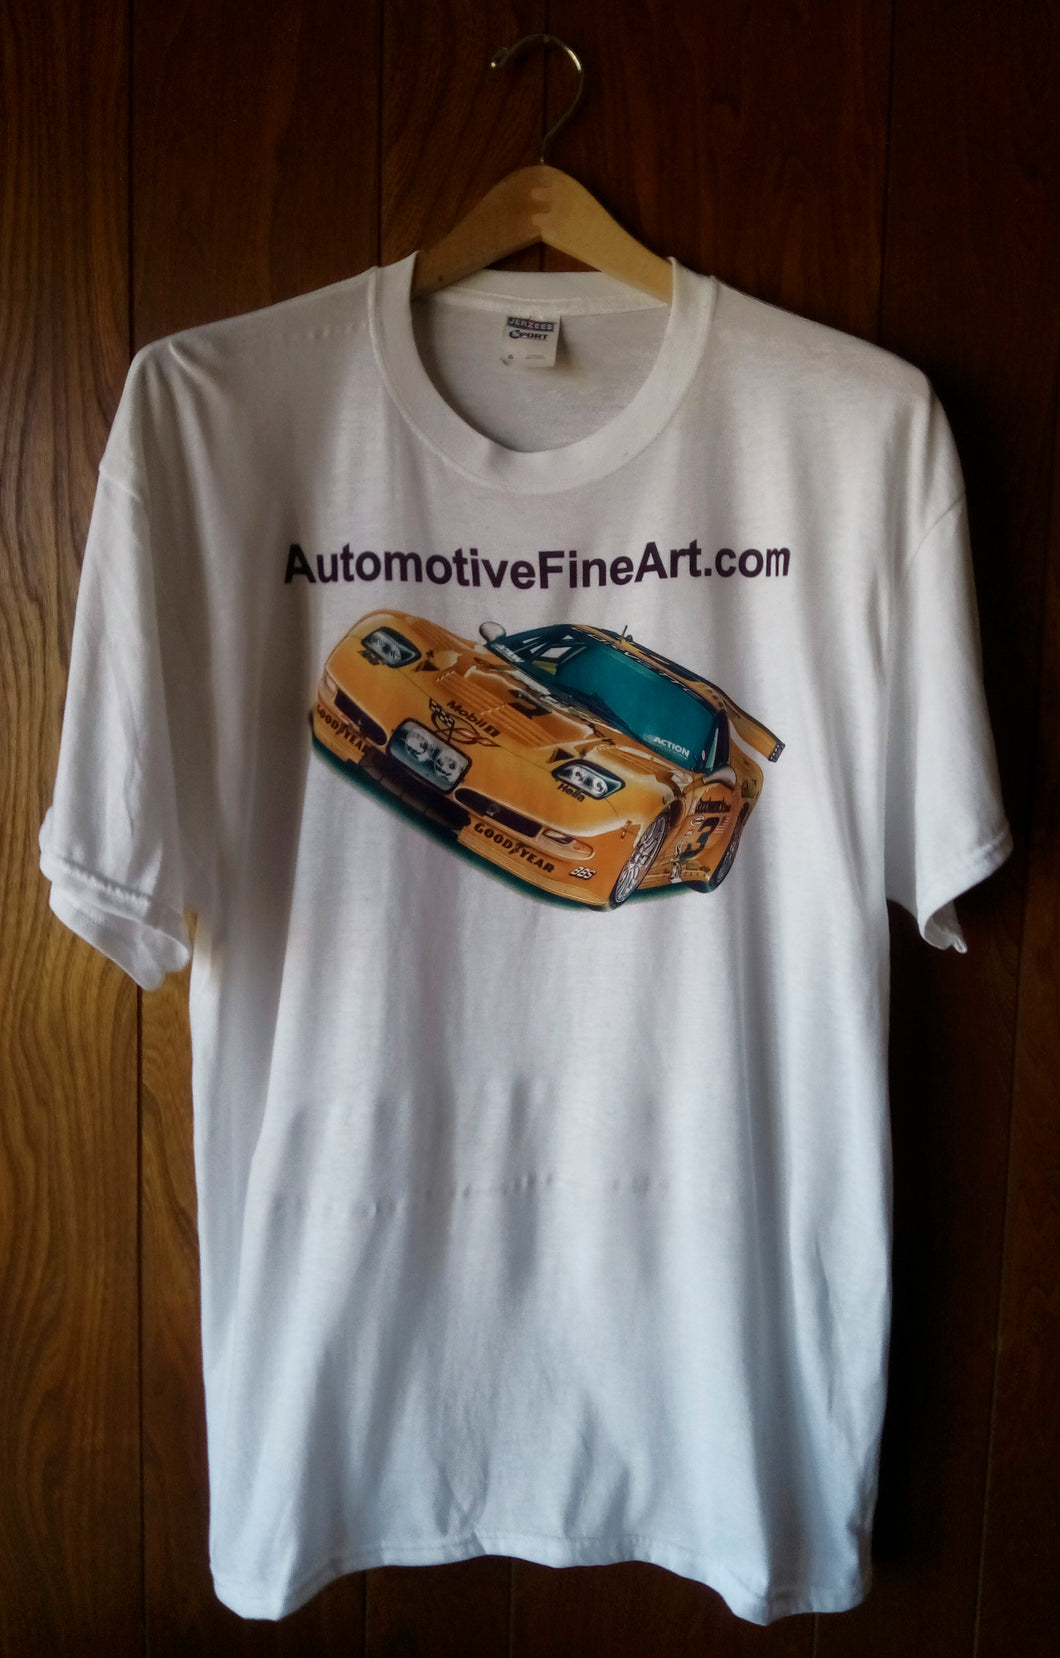 AUTOMOTIVEFINEART.COM WHITE T-SHIRT - AutomotiveFineArt.com